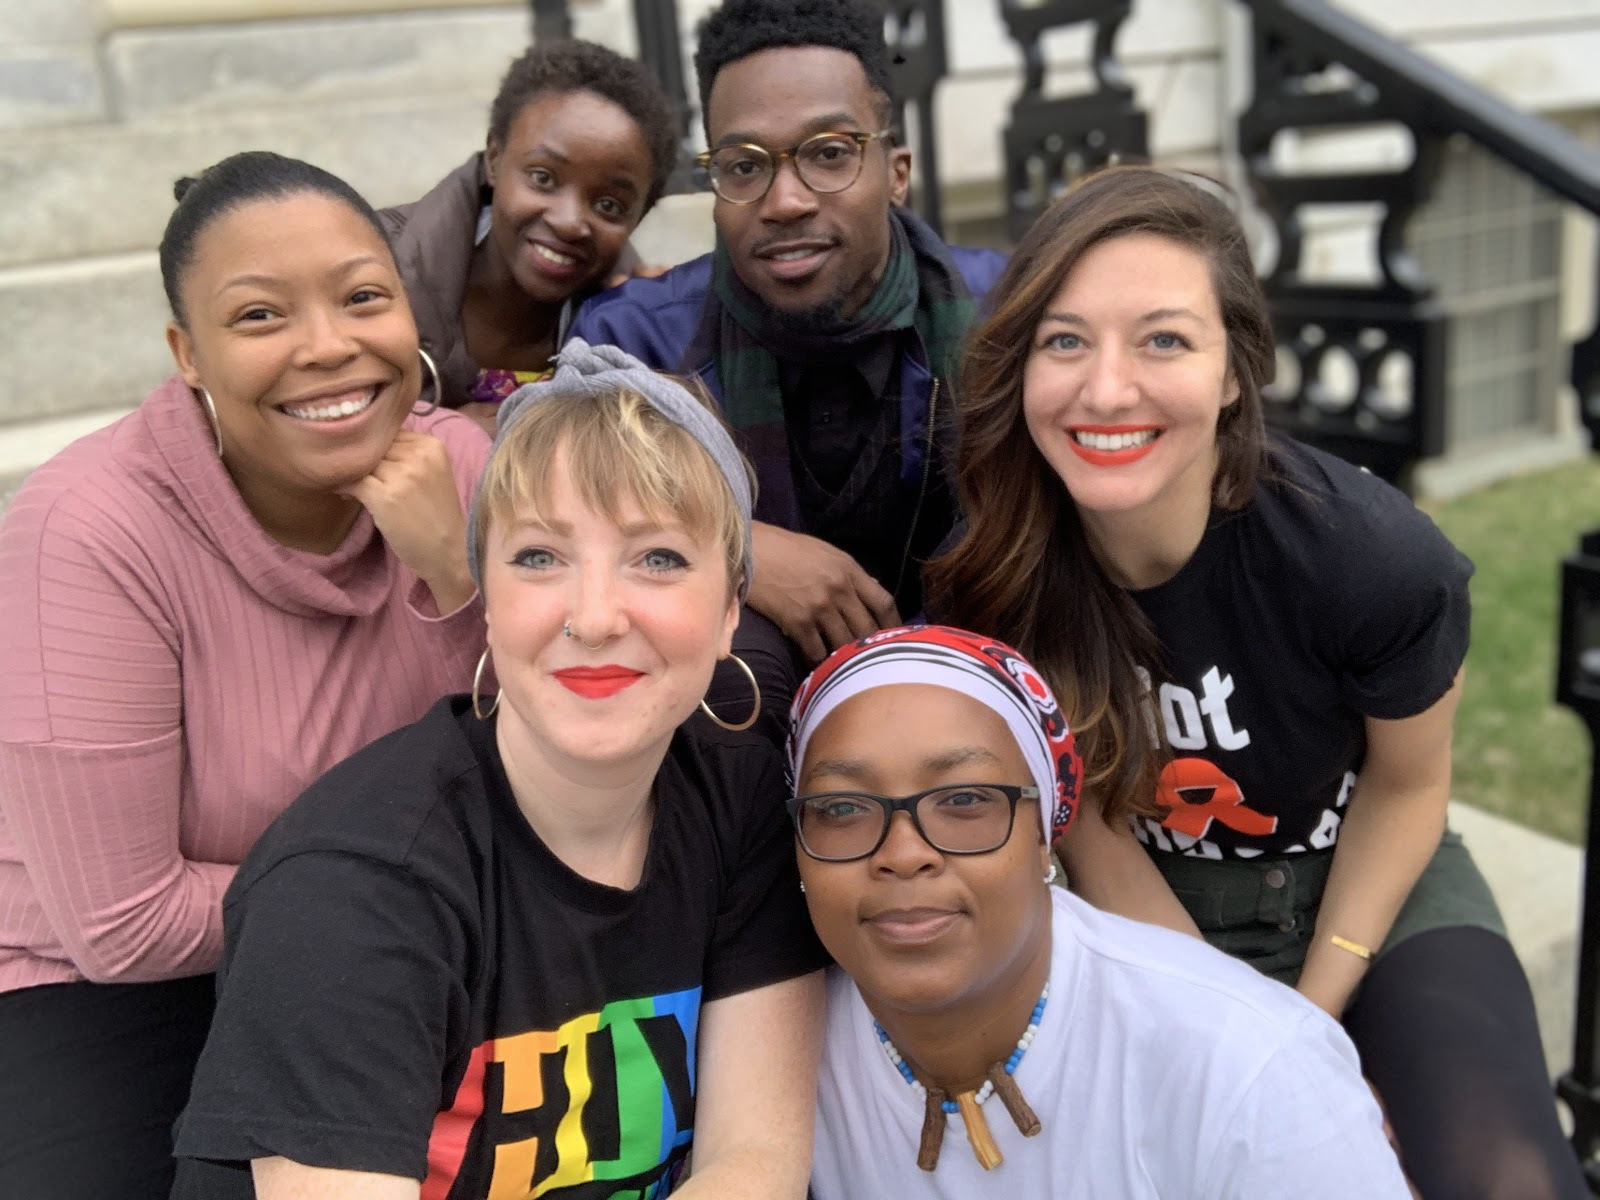 Members of the Speaker Tour sitting on the steps of Harvard Hall in Cambridge, Massachusetts (Back row, left to right: Becky Kroger, Resty Nalwanga, Gavyko Sumter; Front row, left to right: Emily Sanderson, Vovo Gonyela, Brittany Herrick)